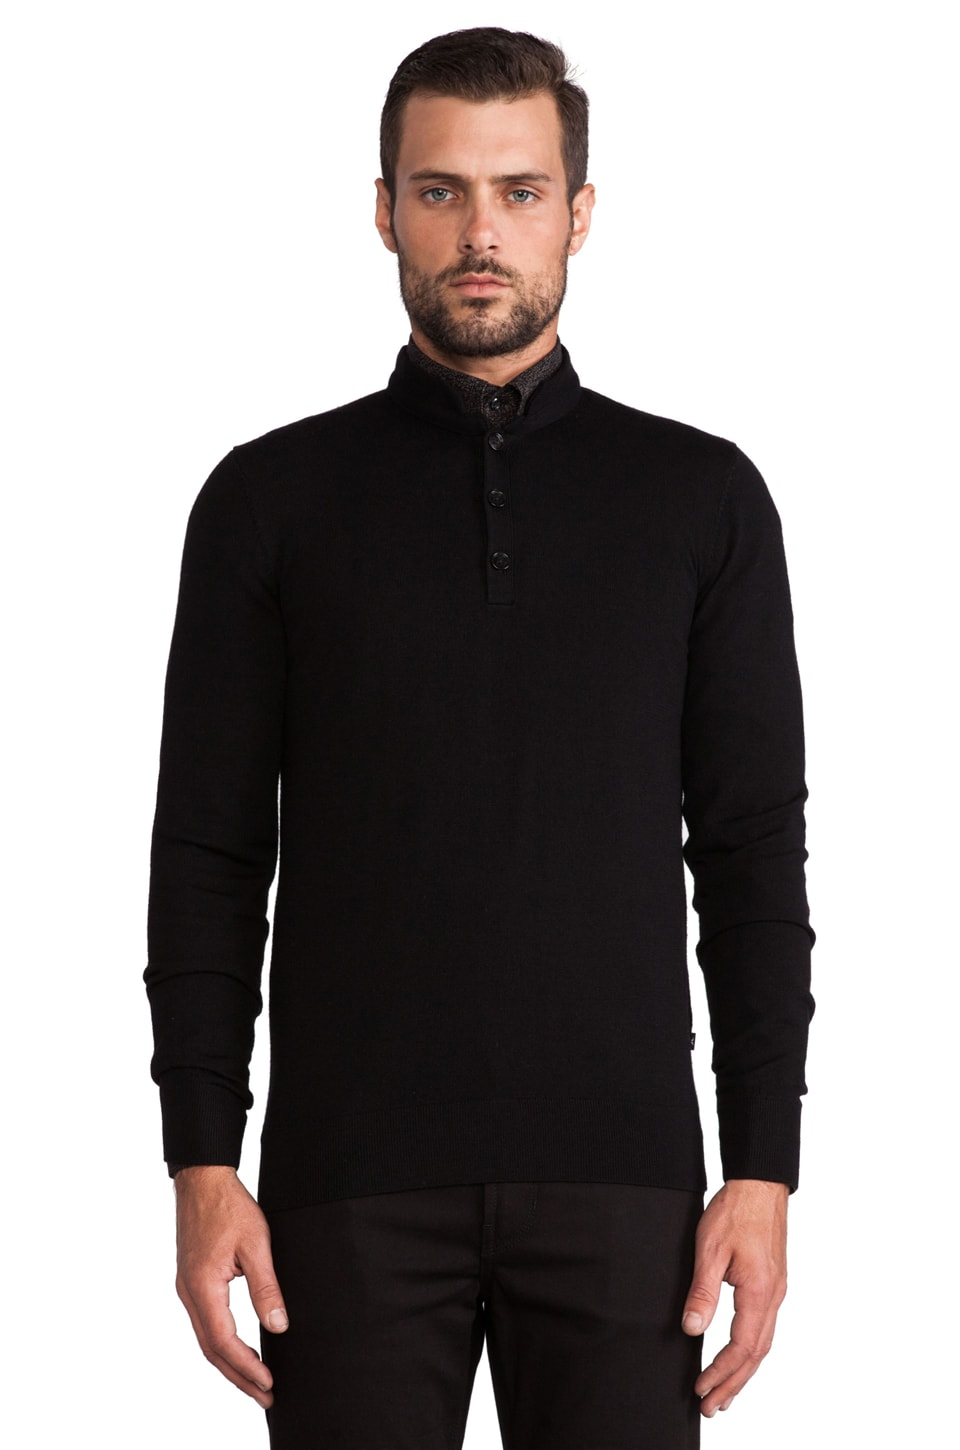 J. Lindeberg Henri Merino Knit in Black